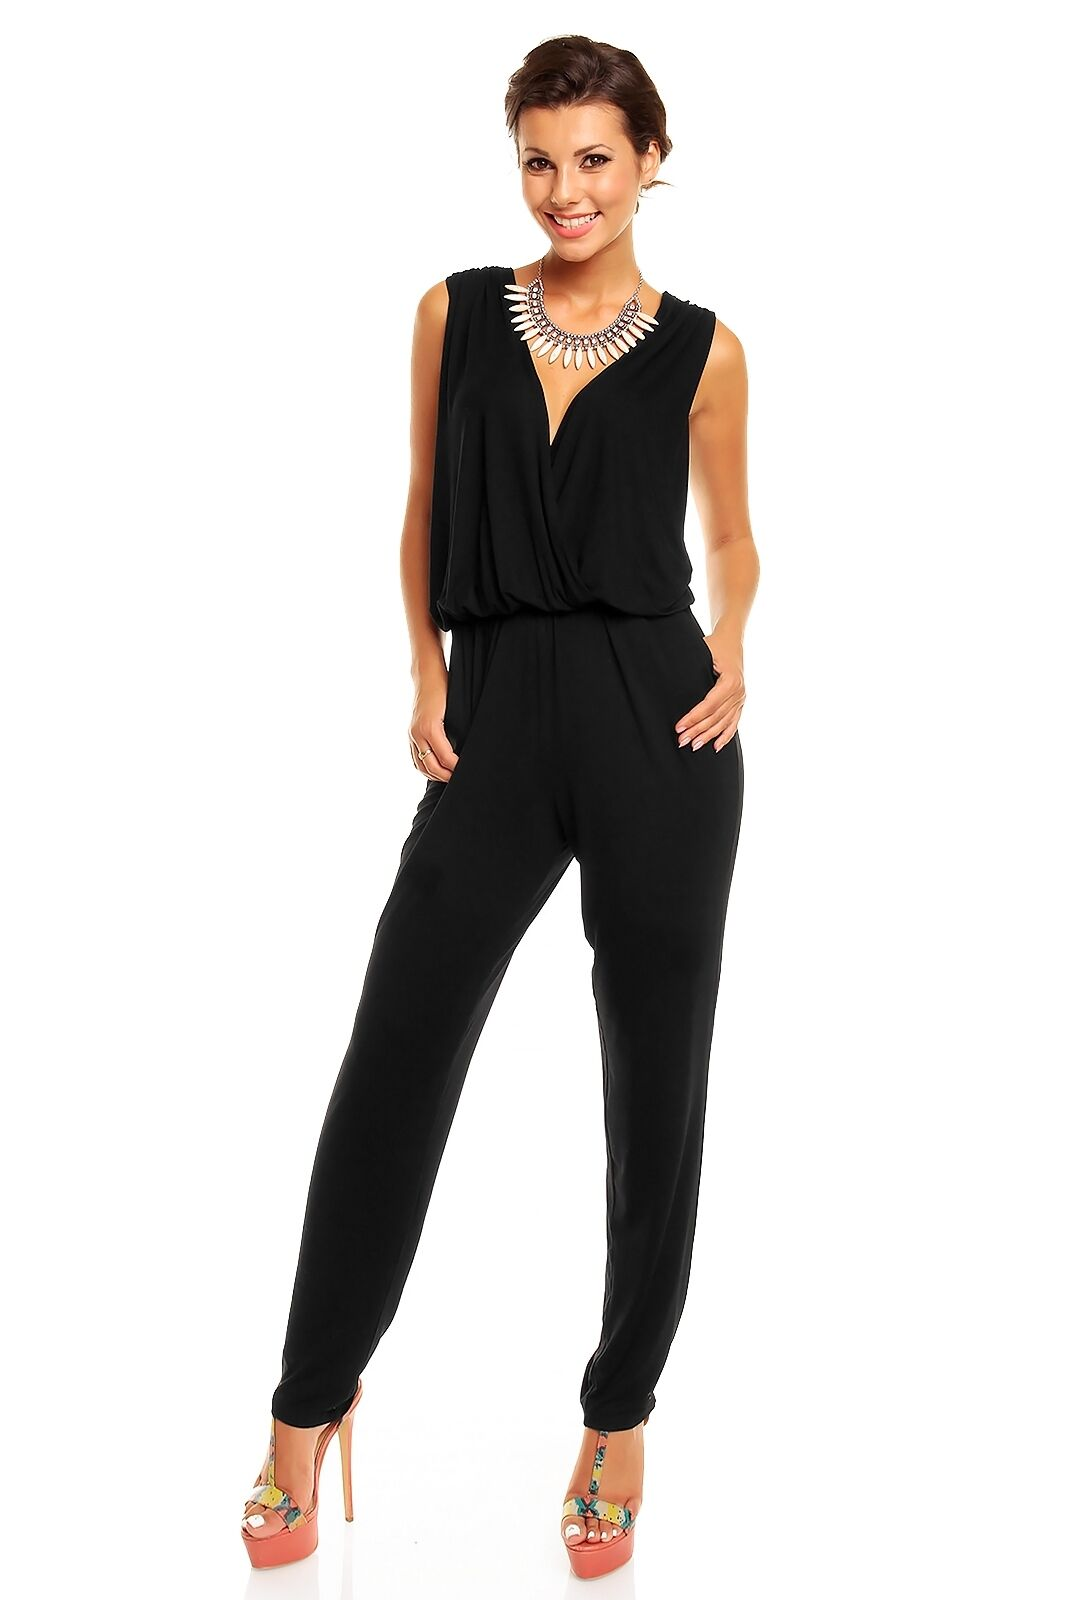 Jumpsuit Edel Jumpsuit Damen Schwarz Eleganter Jumpsuit Damen 25 Best